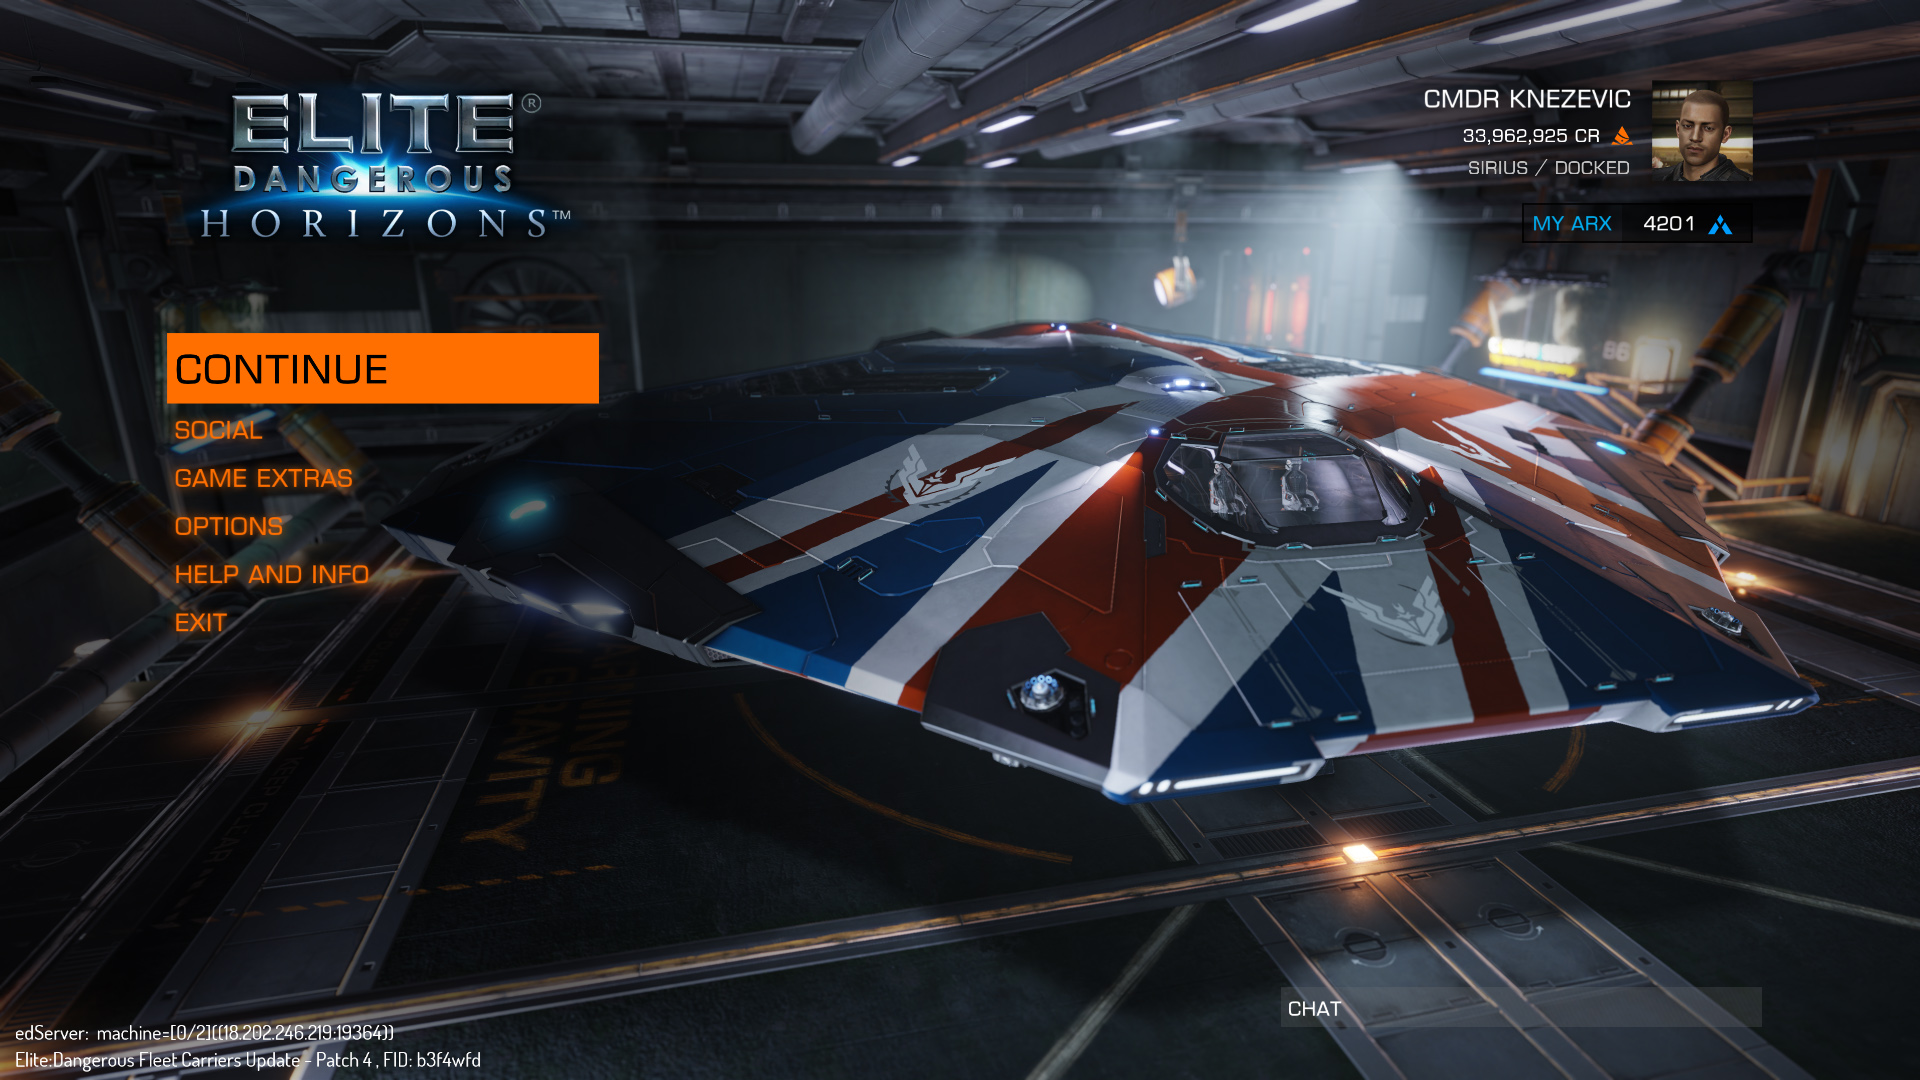 Elite Dangerous Screenshot 2020.09.06 - 03.23.21 b.jpg